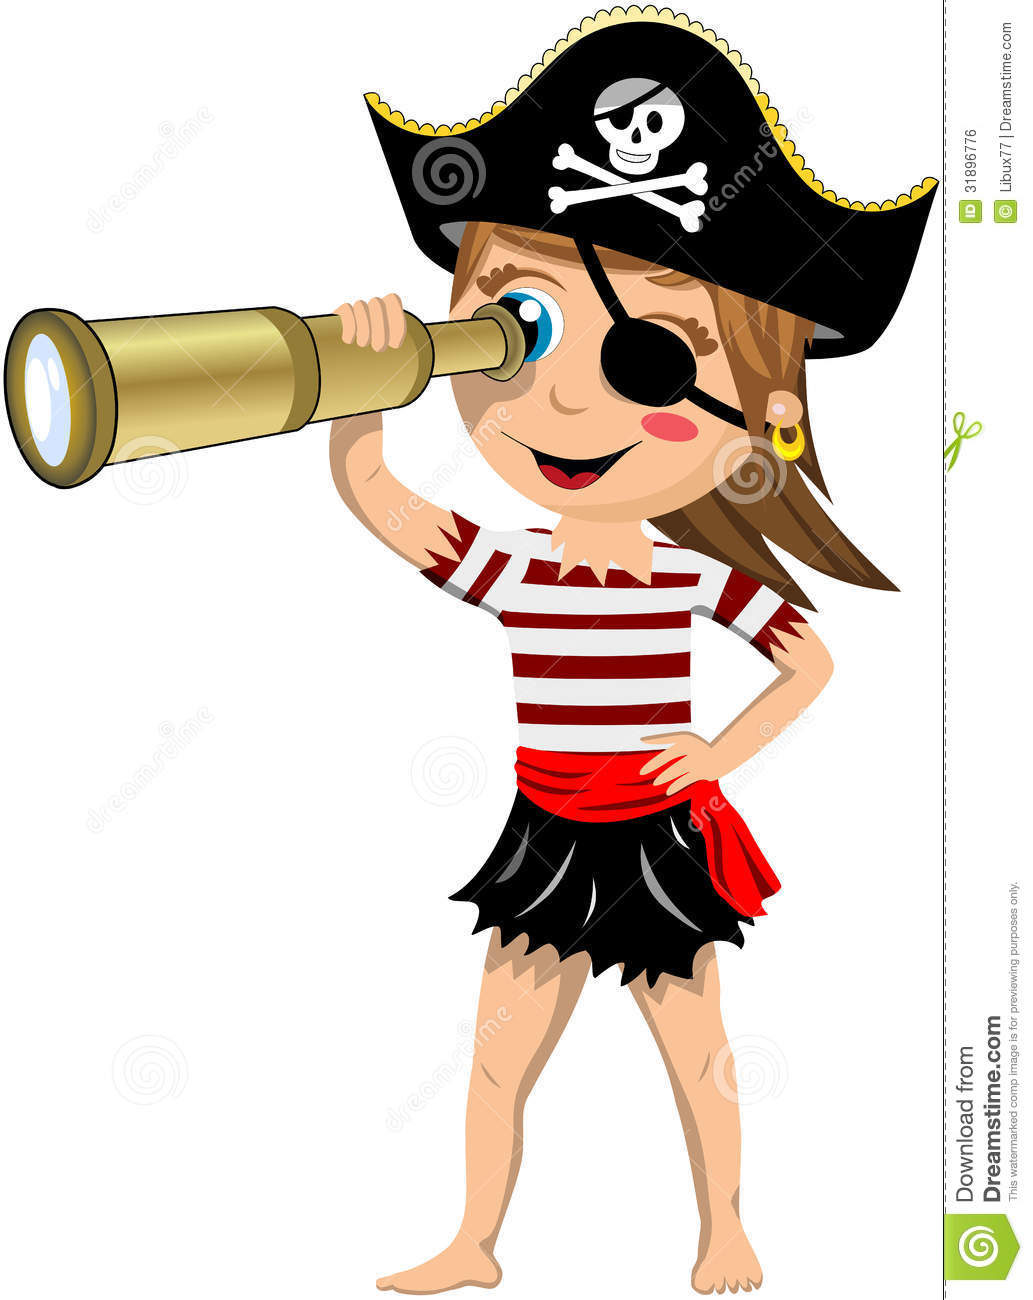 Pirates Of The Caribbean clipart pirate face Girl%20pirate%20clipart Clipart Free Pirate Clipart